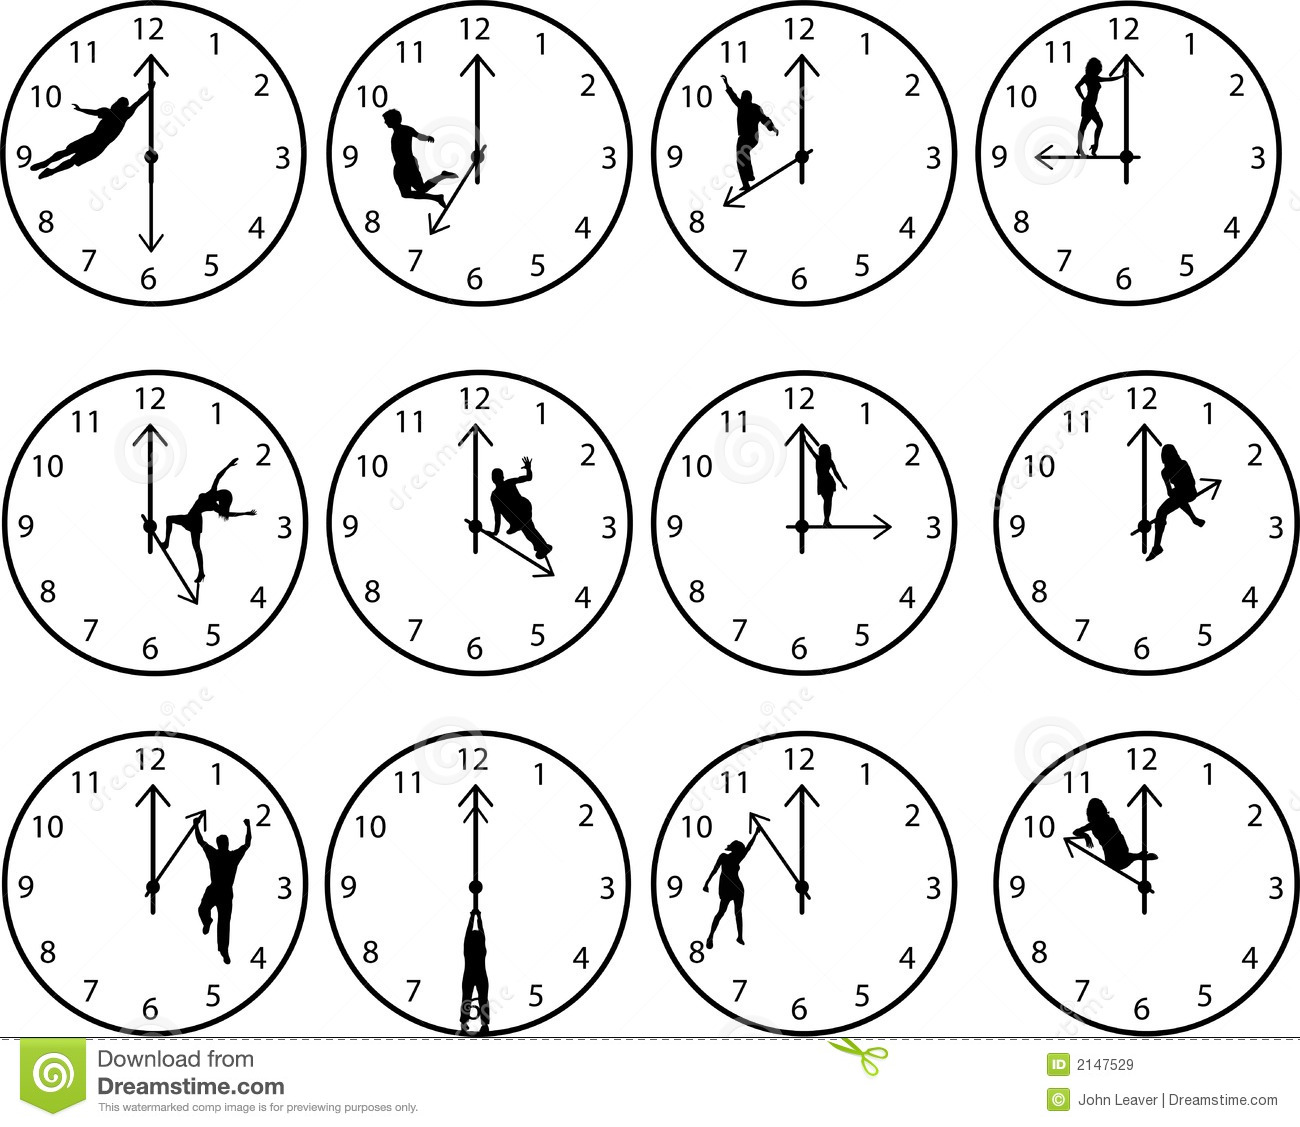 Clocks with people stock vector. Illustration of sitting